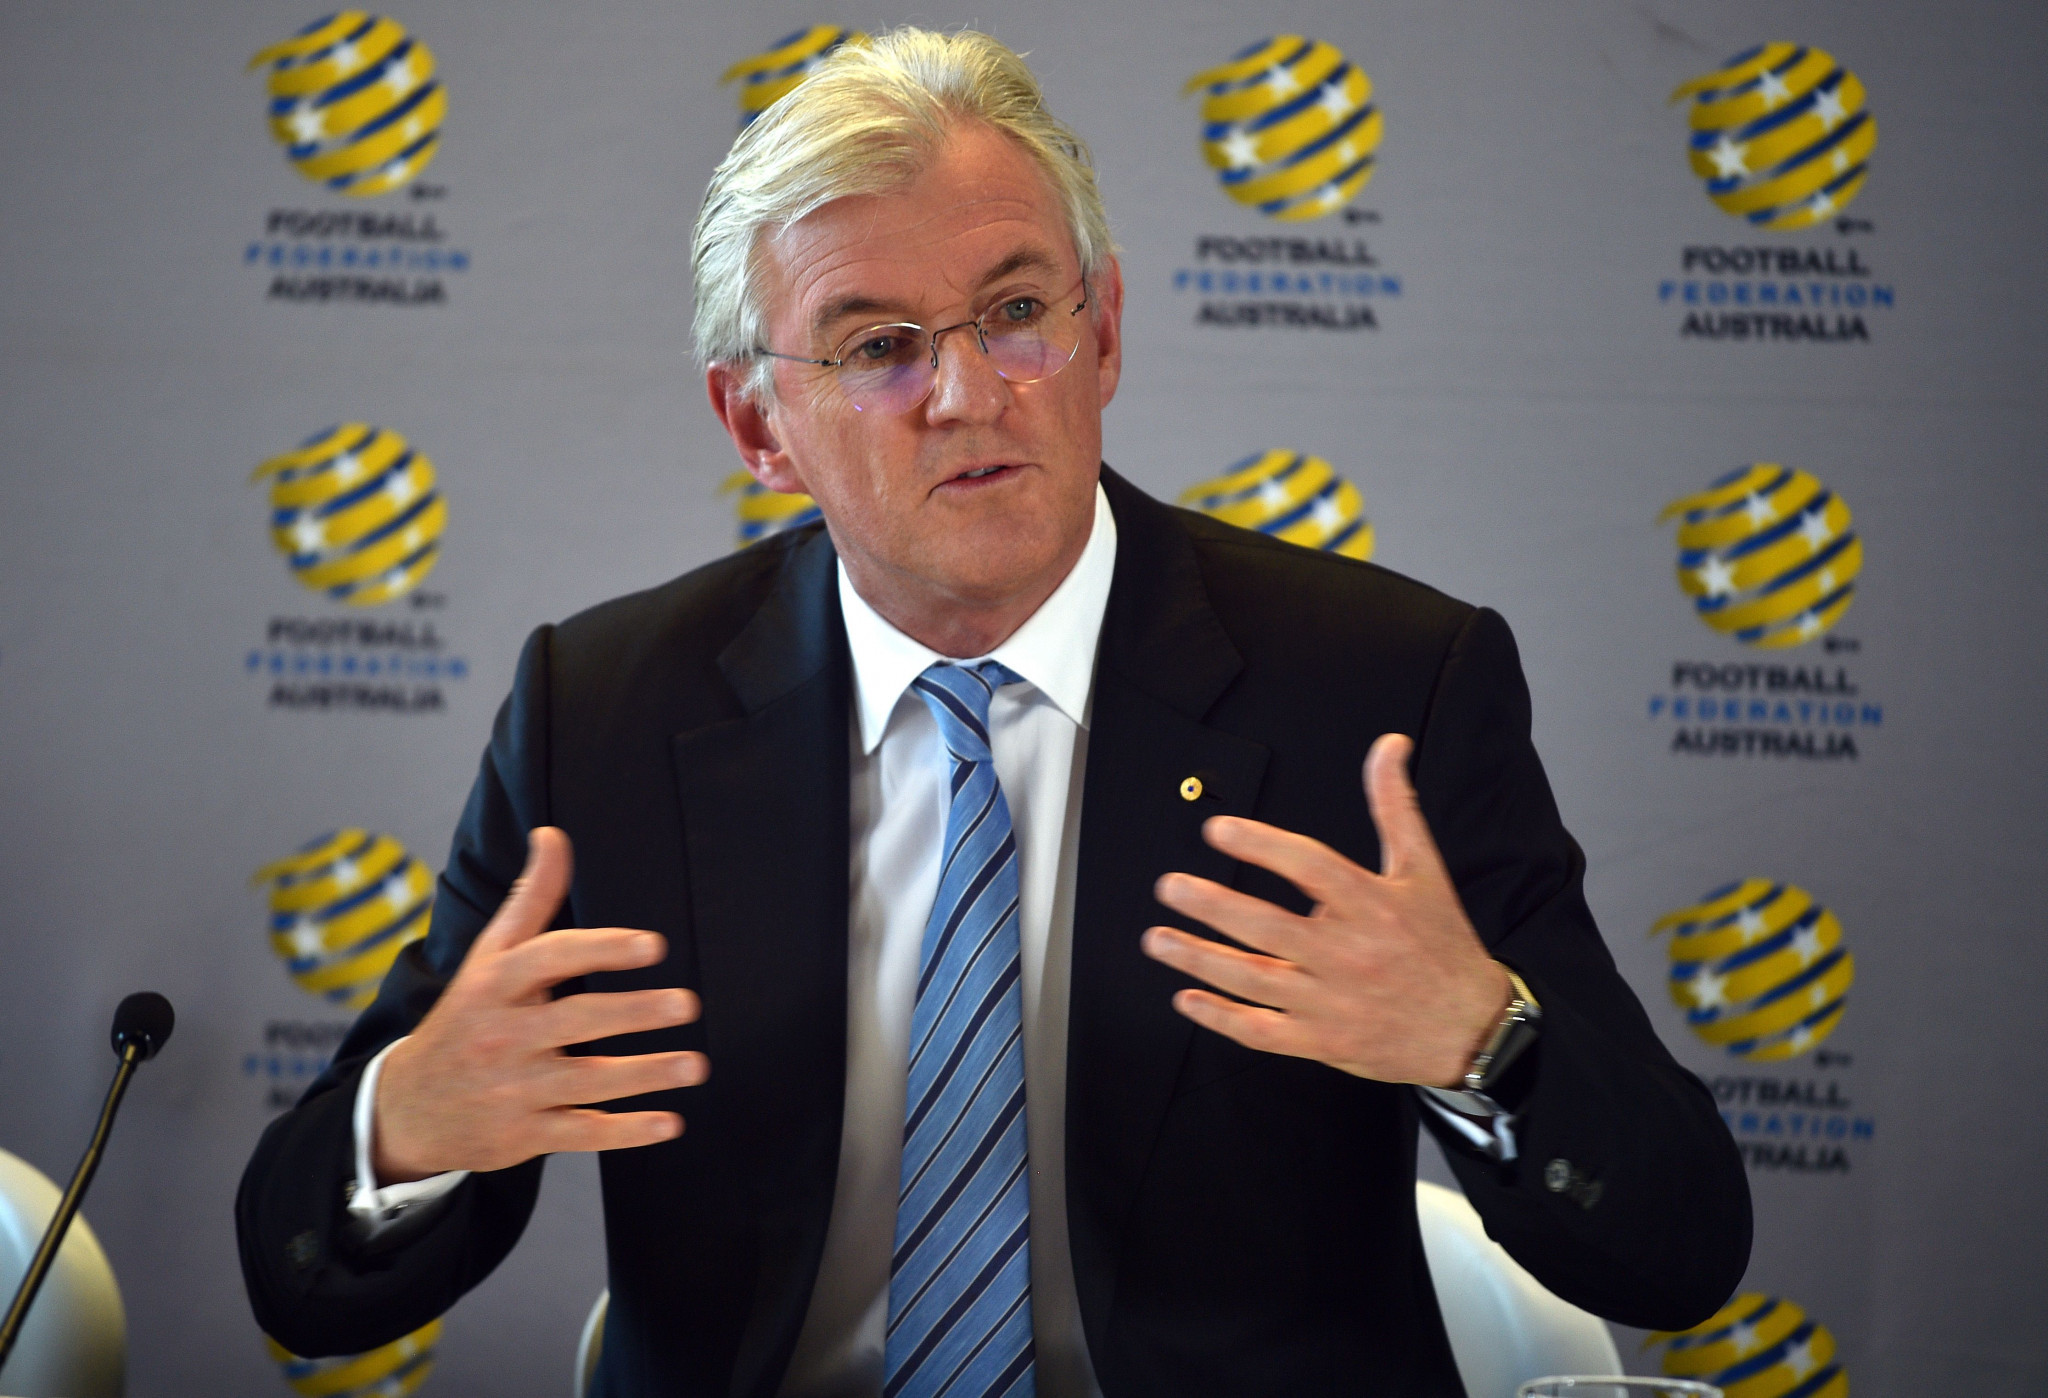 FIFA and AFC officials to hold meetings with Football Federation Australia next week to help resolve Congress dispute